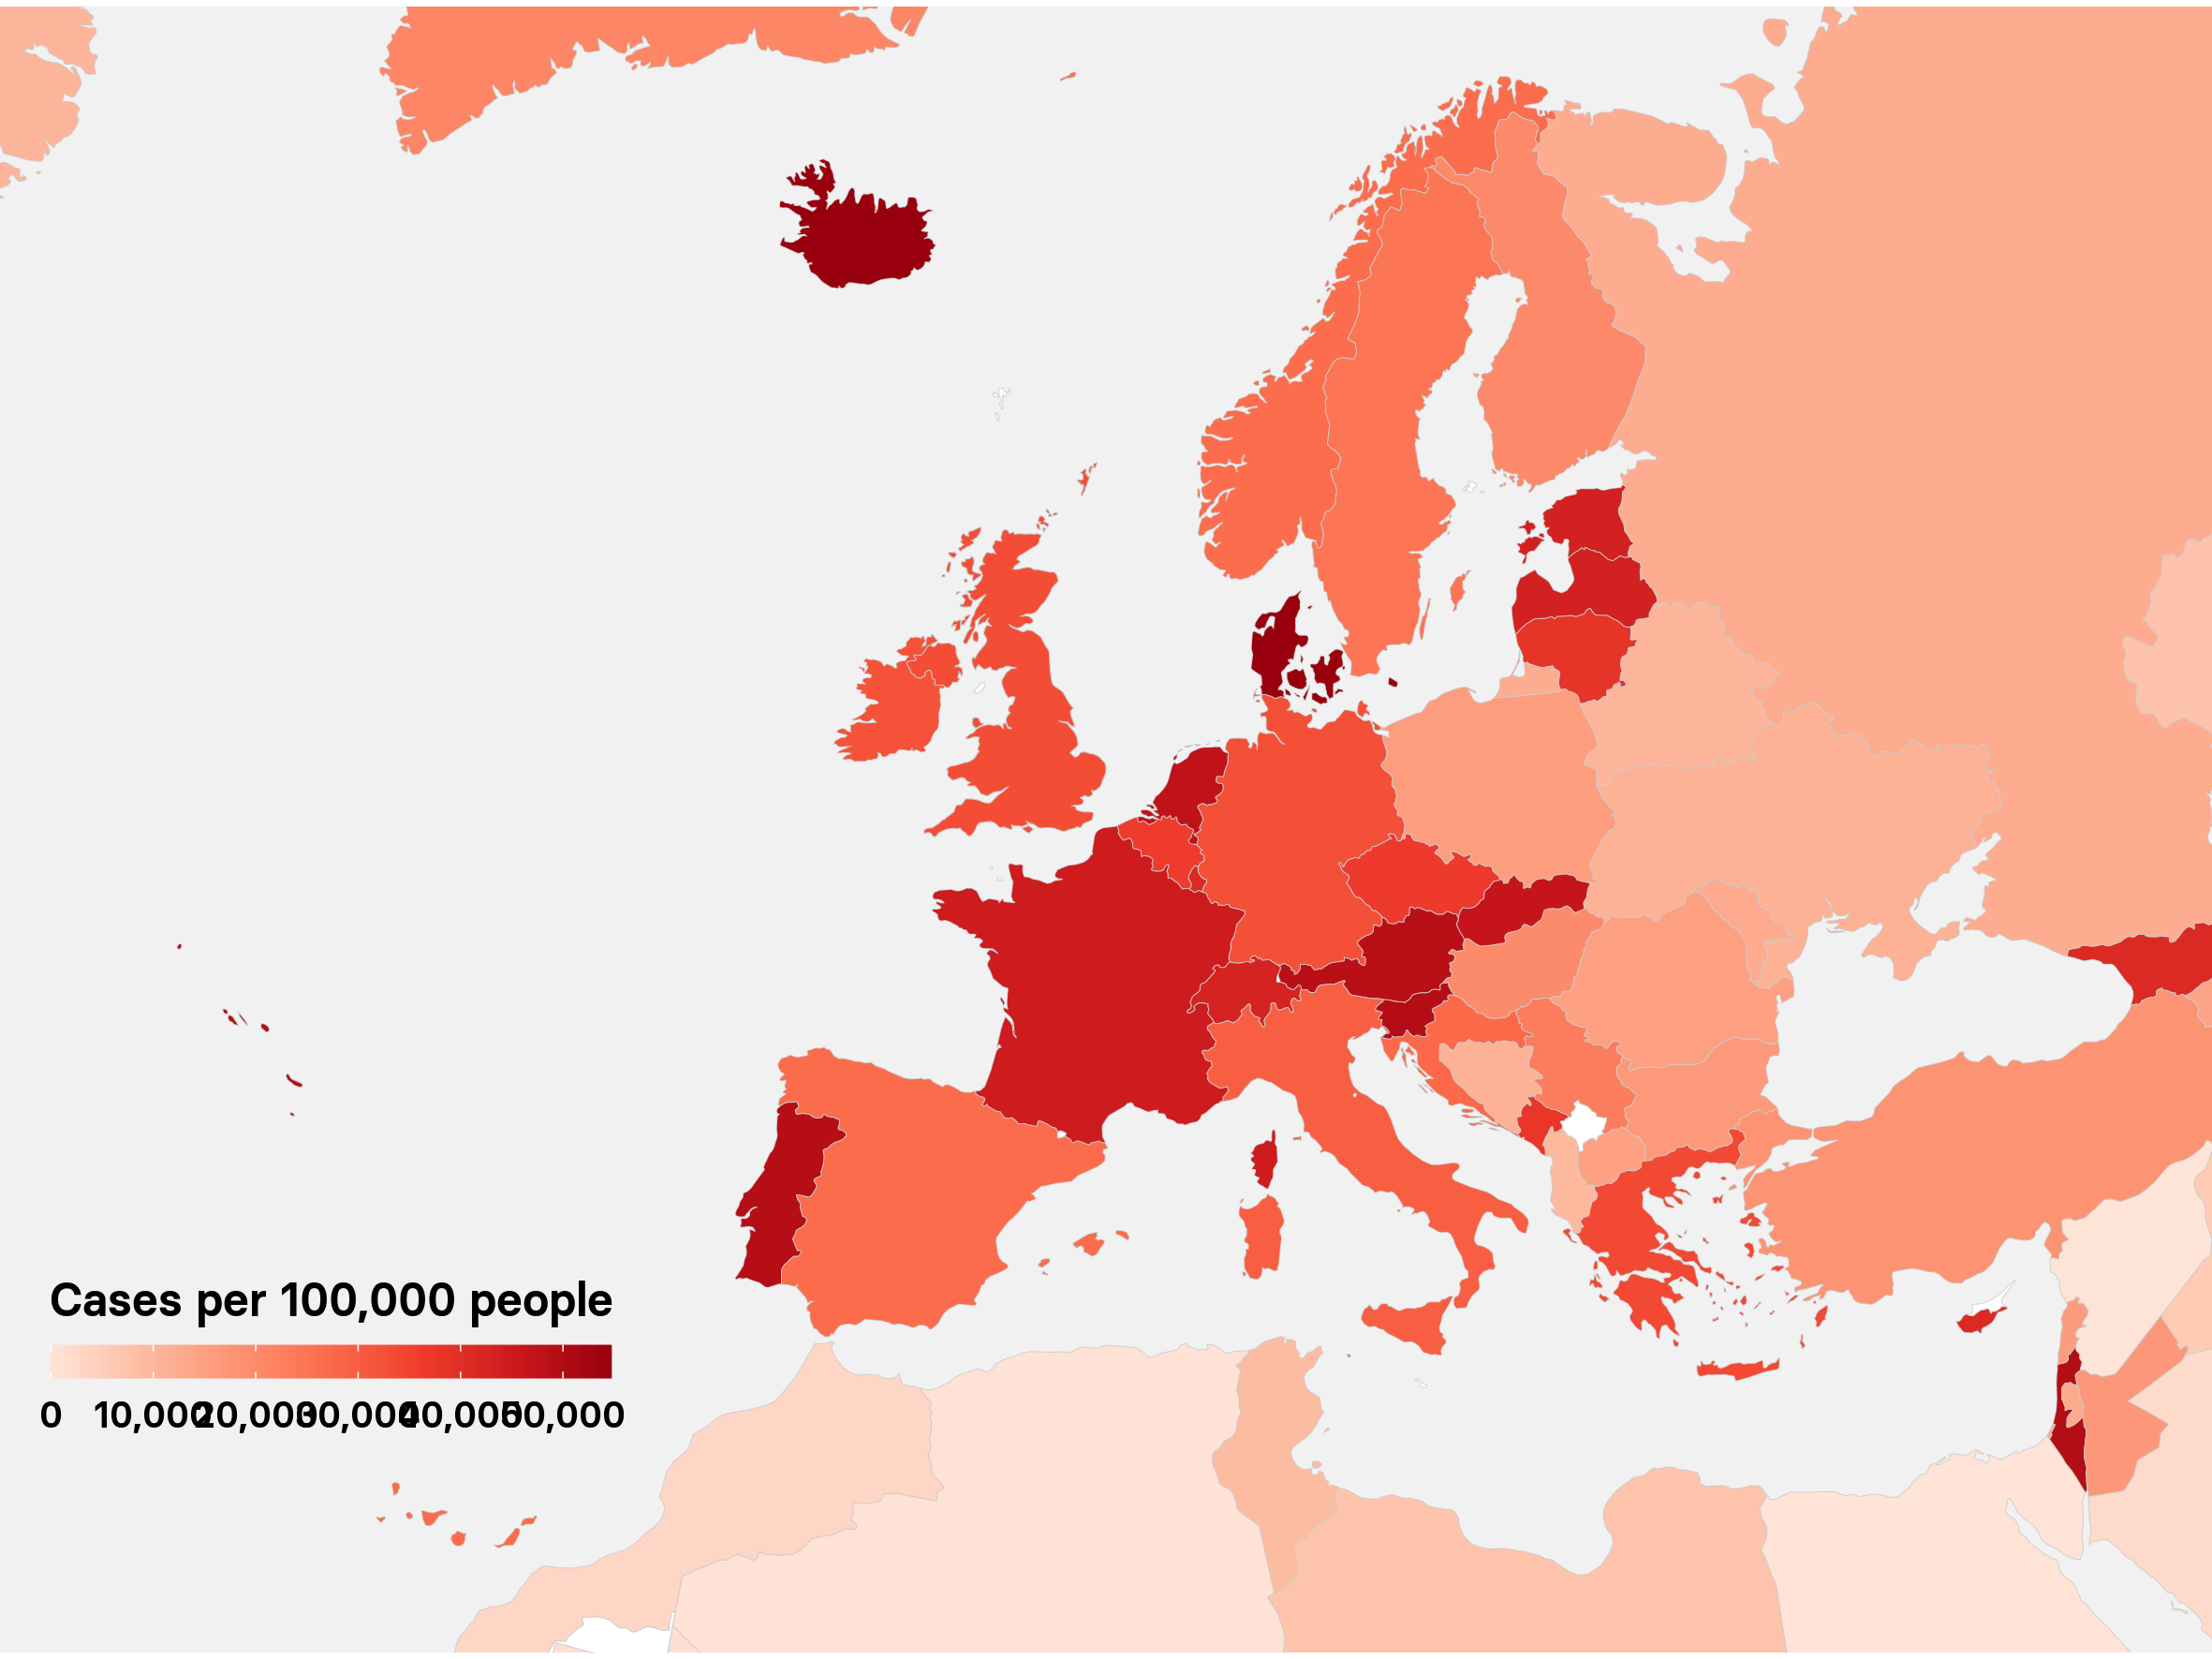 Europe cases map